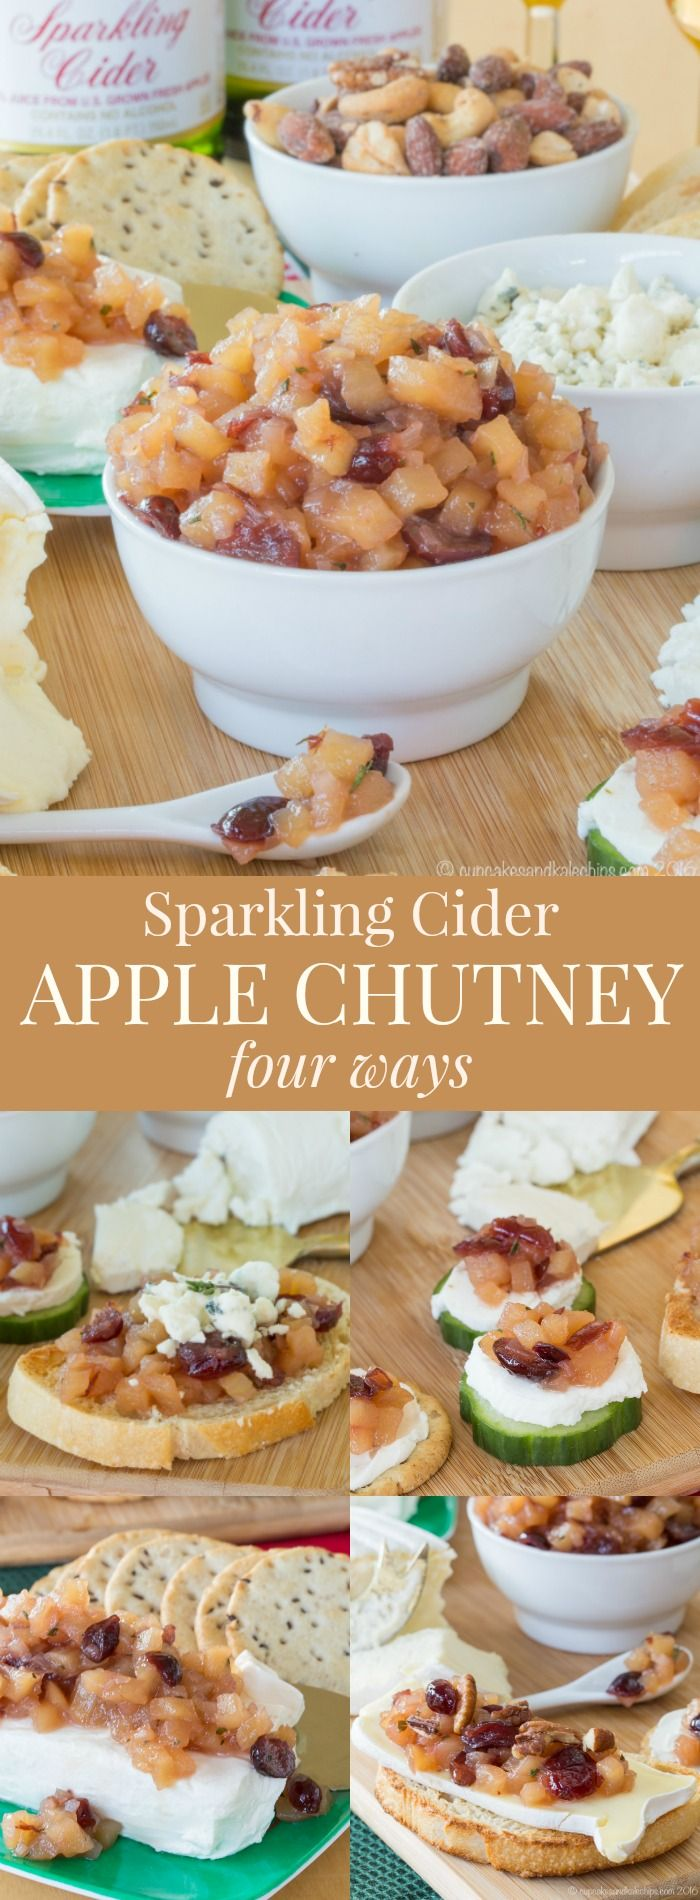 Sparkling Cider Apple Chutney - an easy recipe with four serving ideas for appetizers, or to top chicken, pork, or salads made with @martinellisco #ad